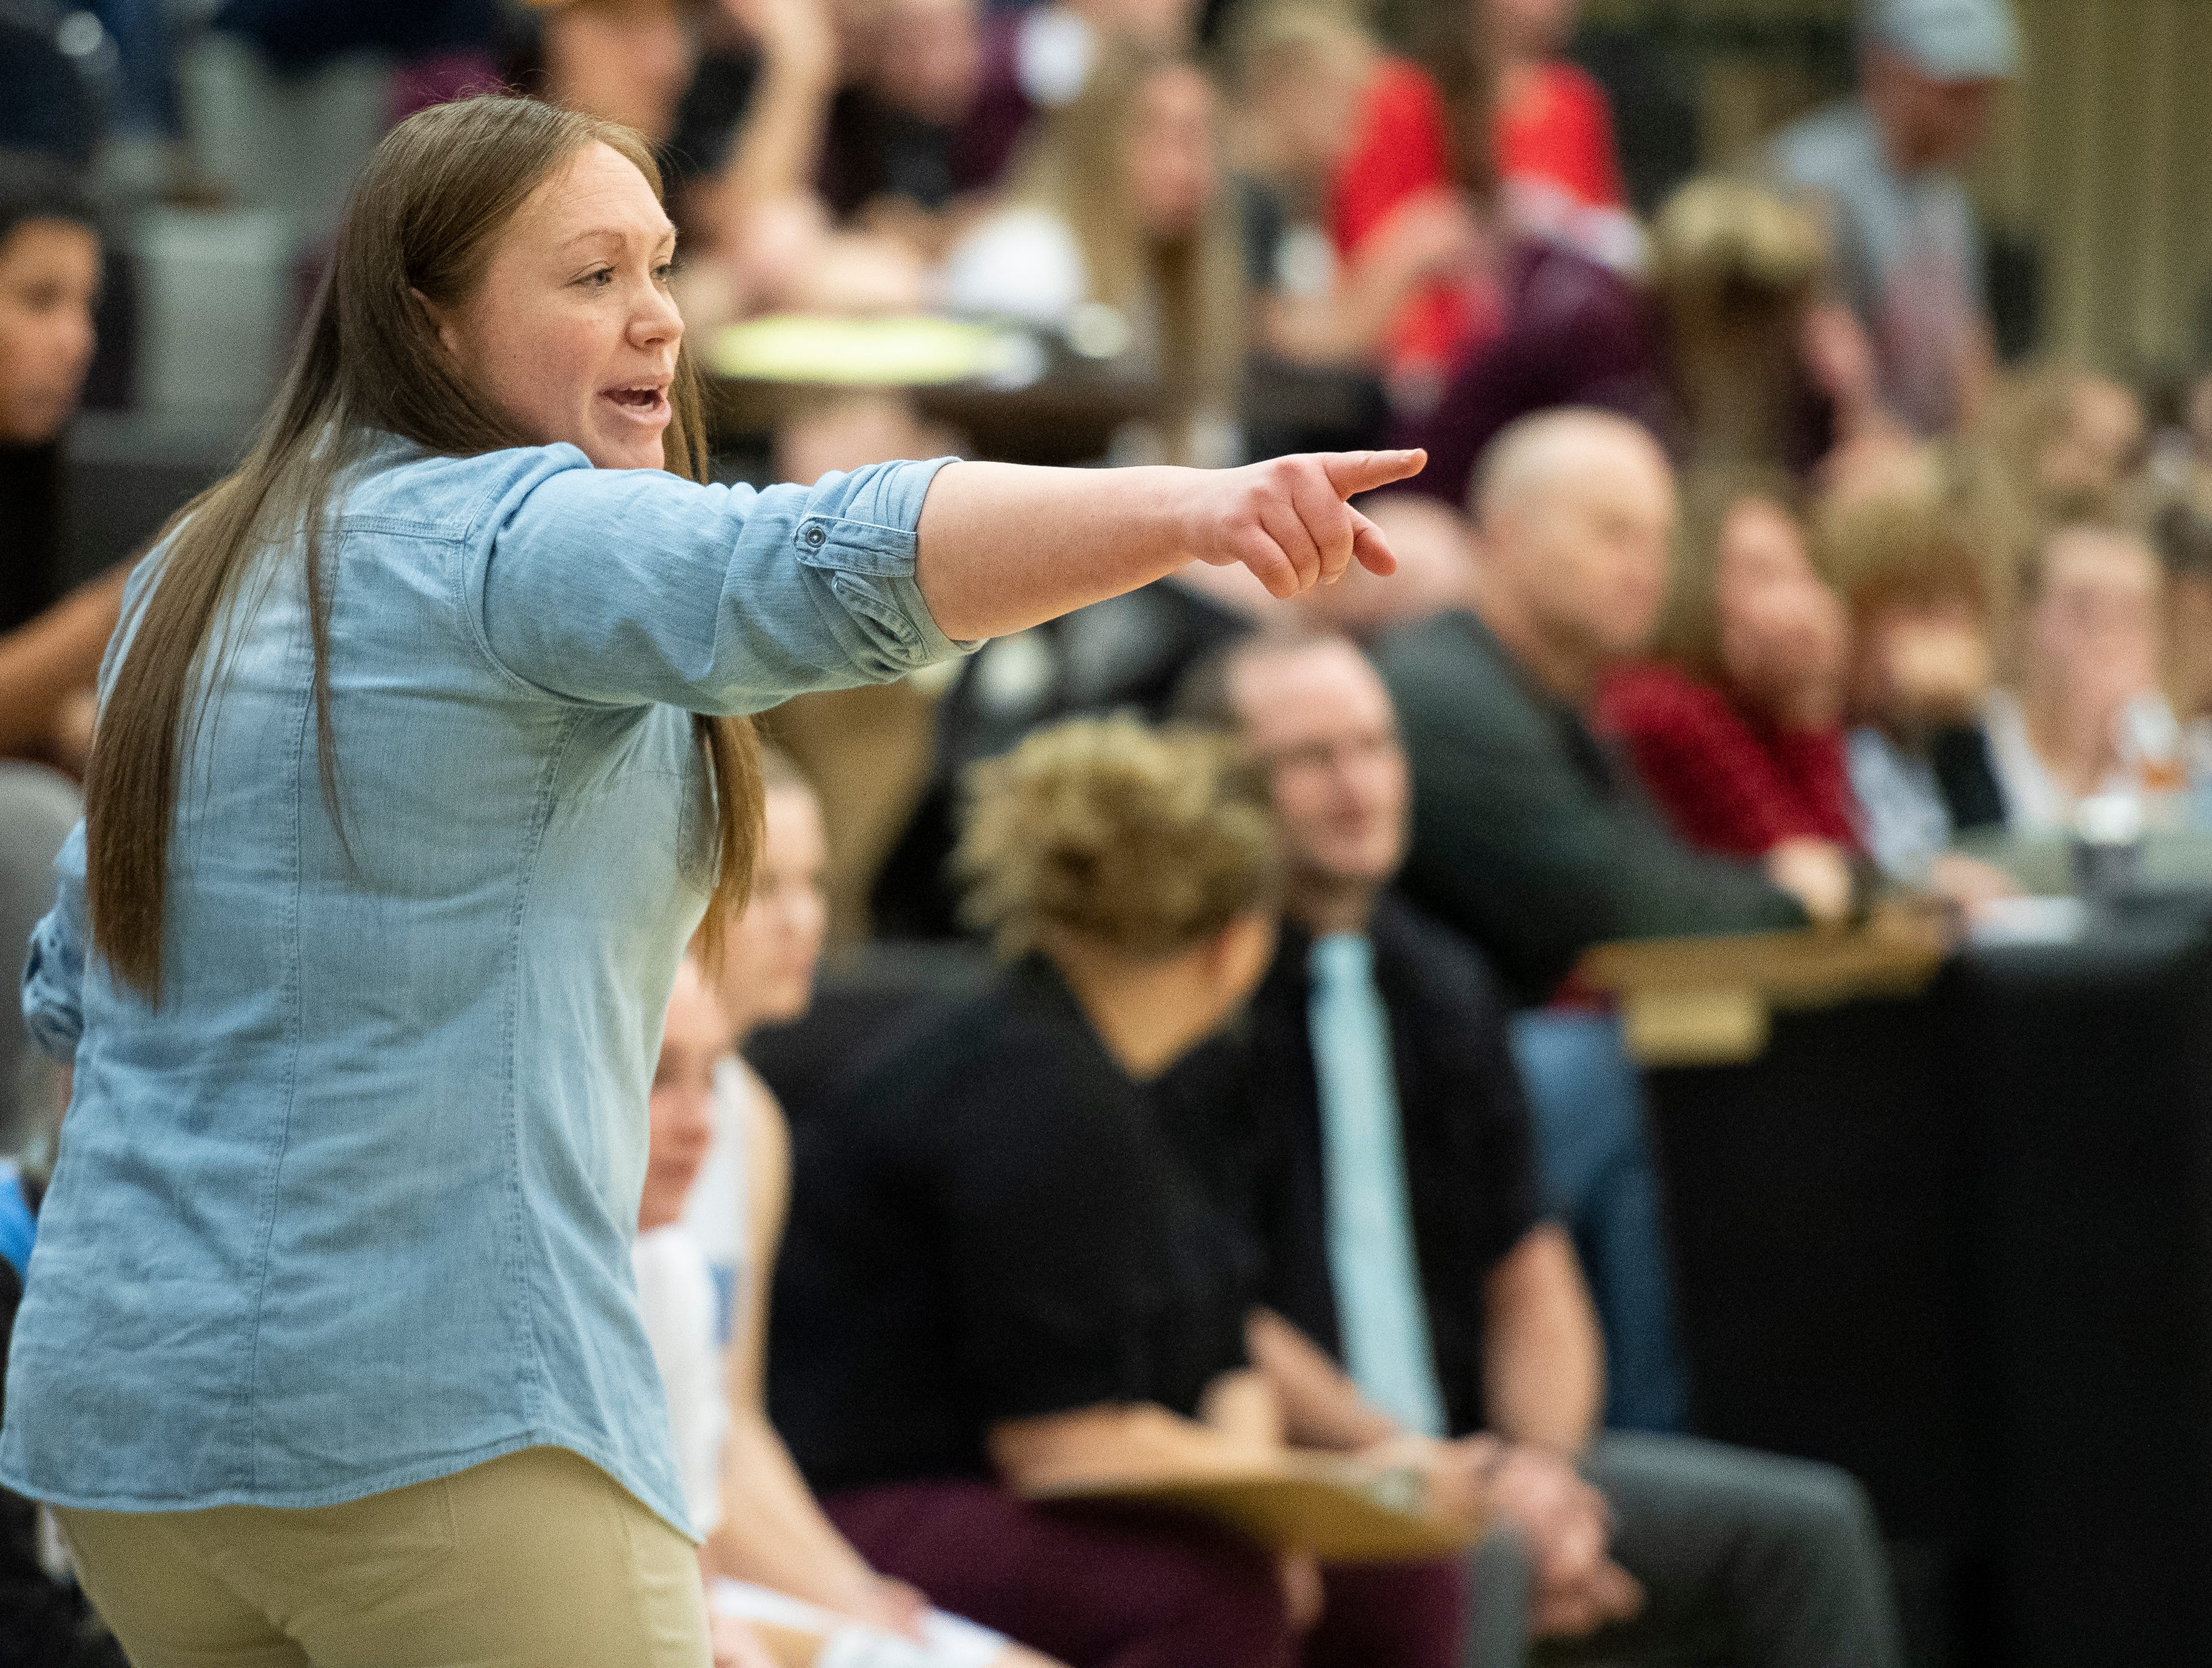 The Canyon View girls head coach Jaycee Barnhurst calls a play against Pine View at CVHS Tuesday, January 15, 2019. The CVHS Falcons won, 48-46.